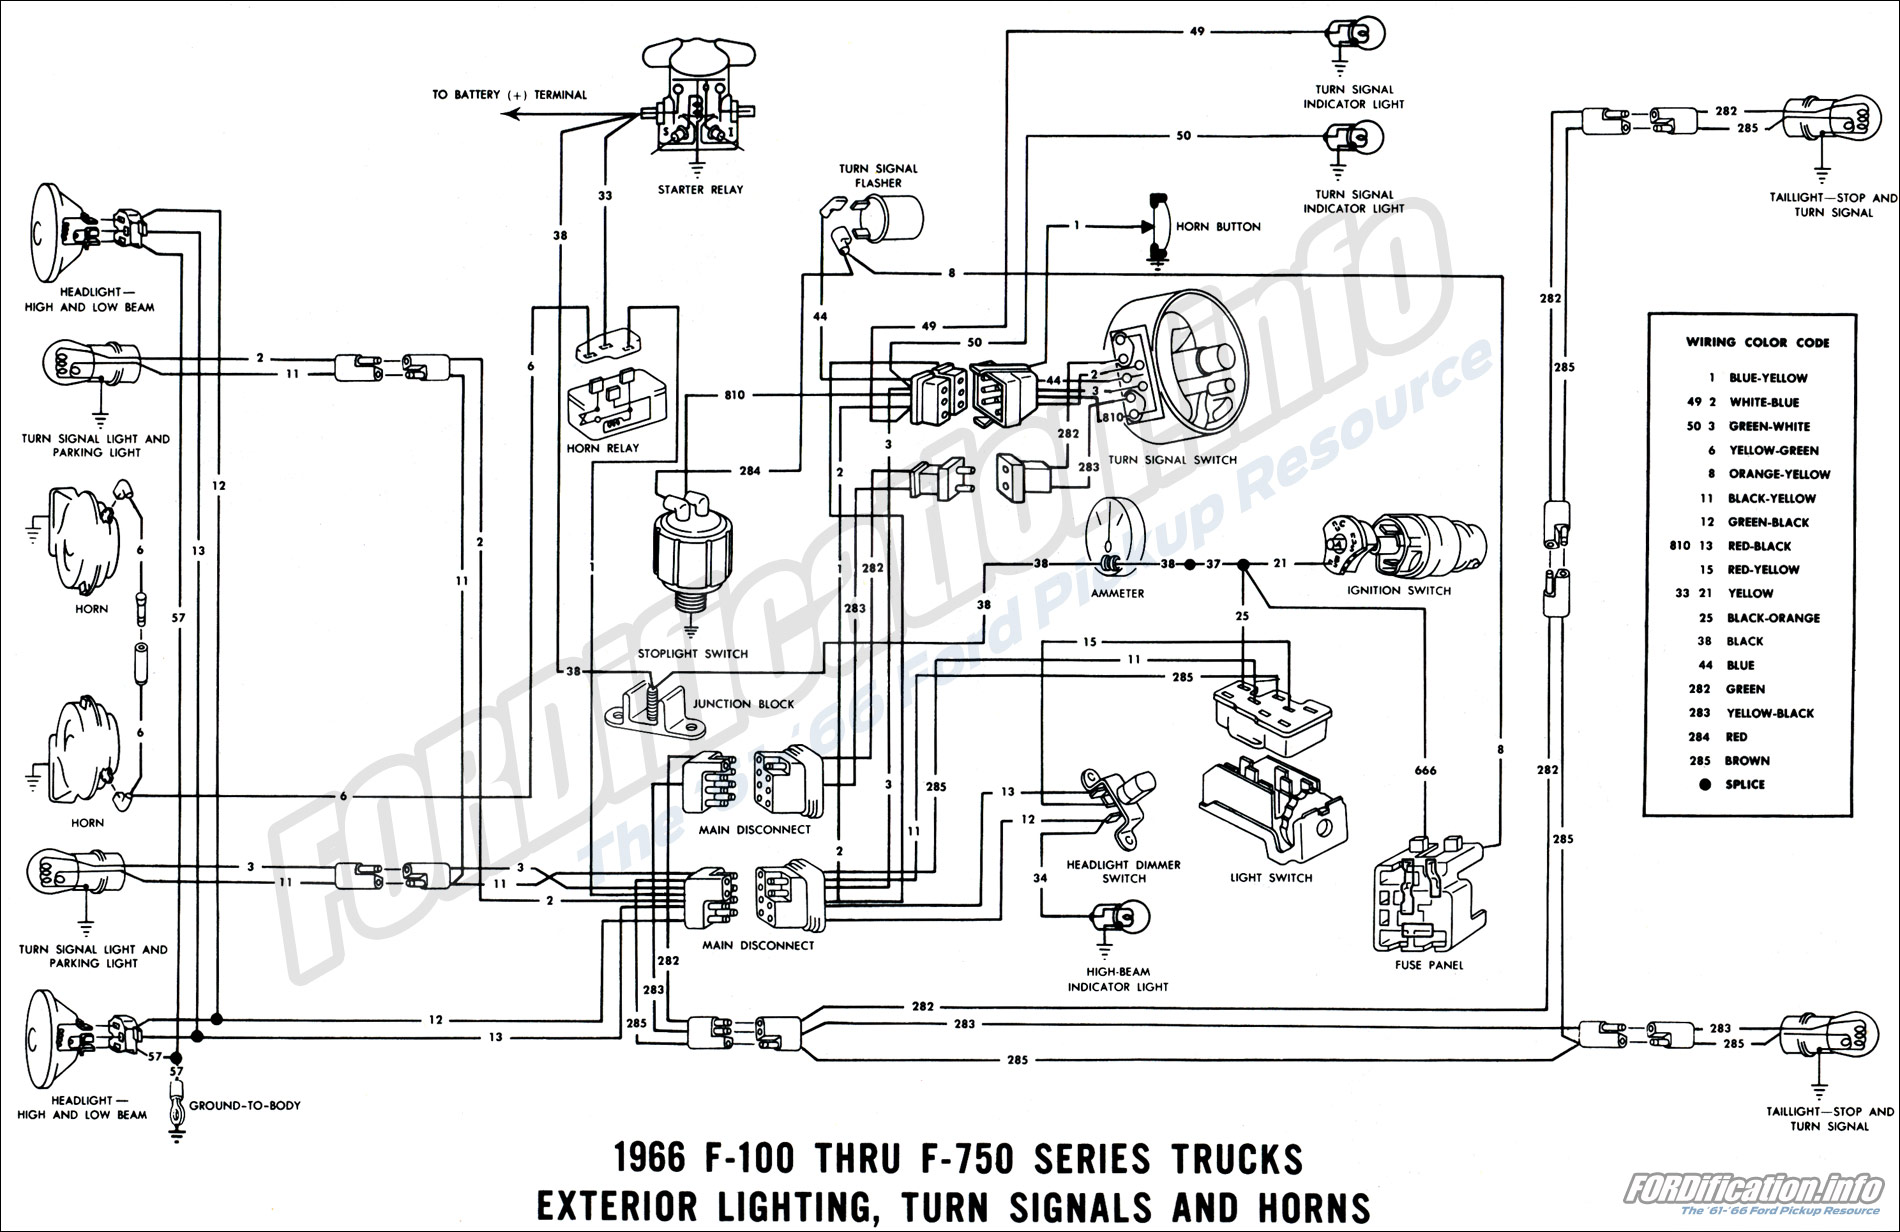 1966 ford truck wiring diagrams fordification info the 61 66 rh fordification info 2001 ford f250 turn signal wiring diagram 2002 ford f250 turn signal wiring diagram